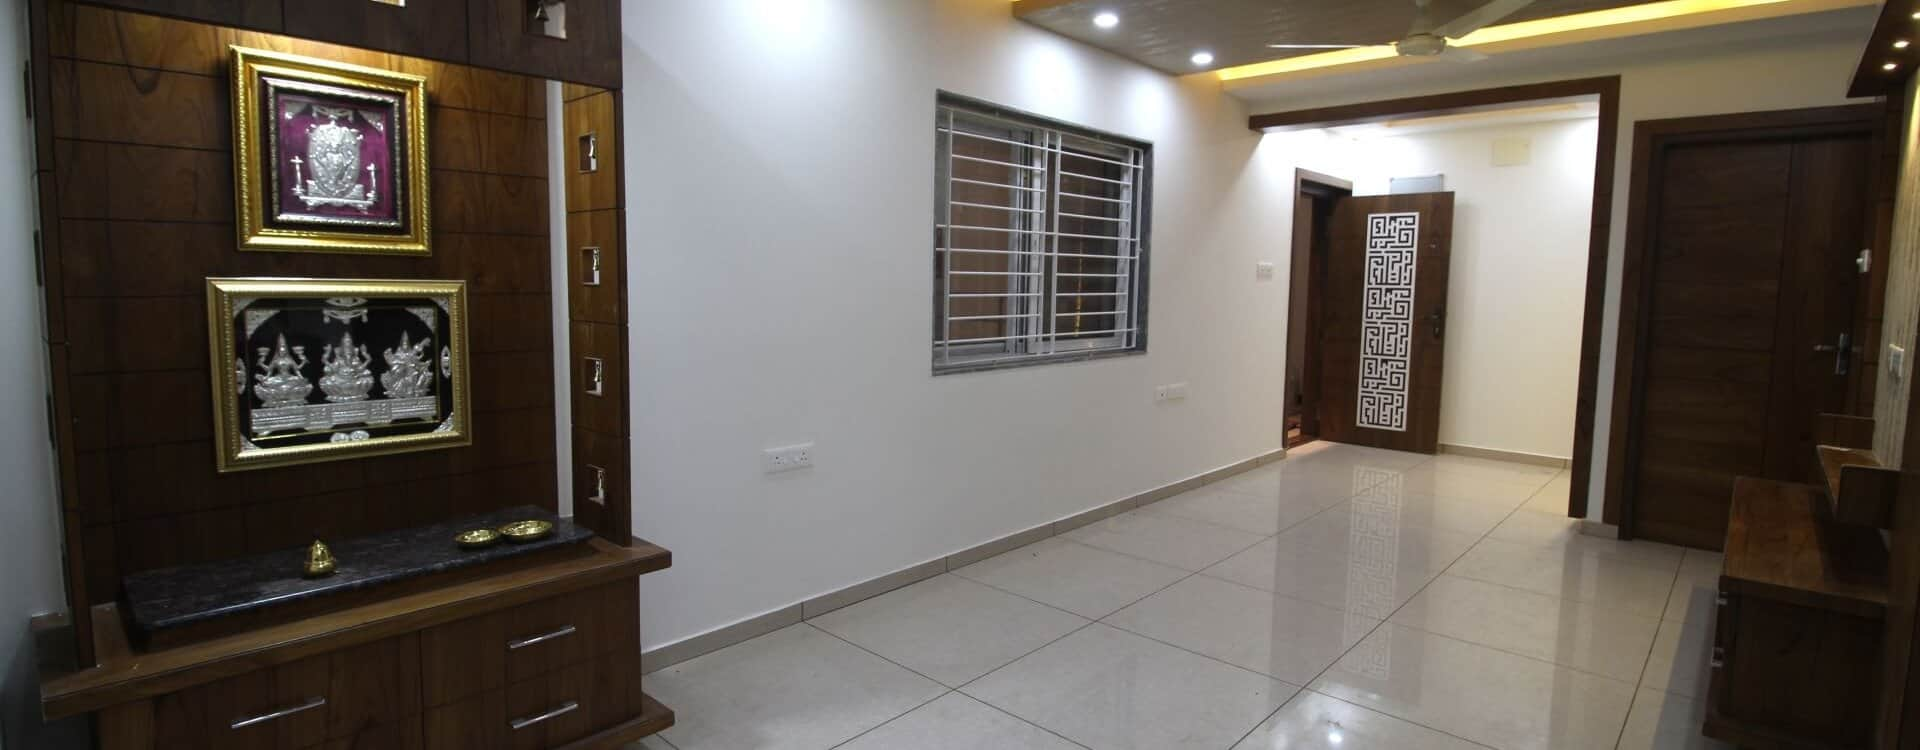 Mr. Ganesh Shetty's Residence at Bhandary Pacific Apartment, Kalakunj Road, Mangalore